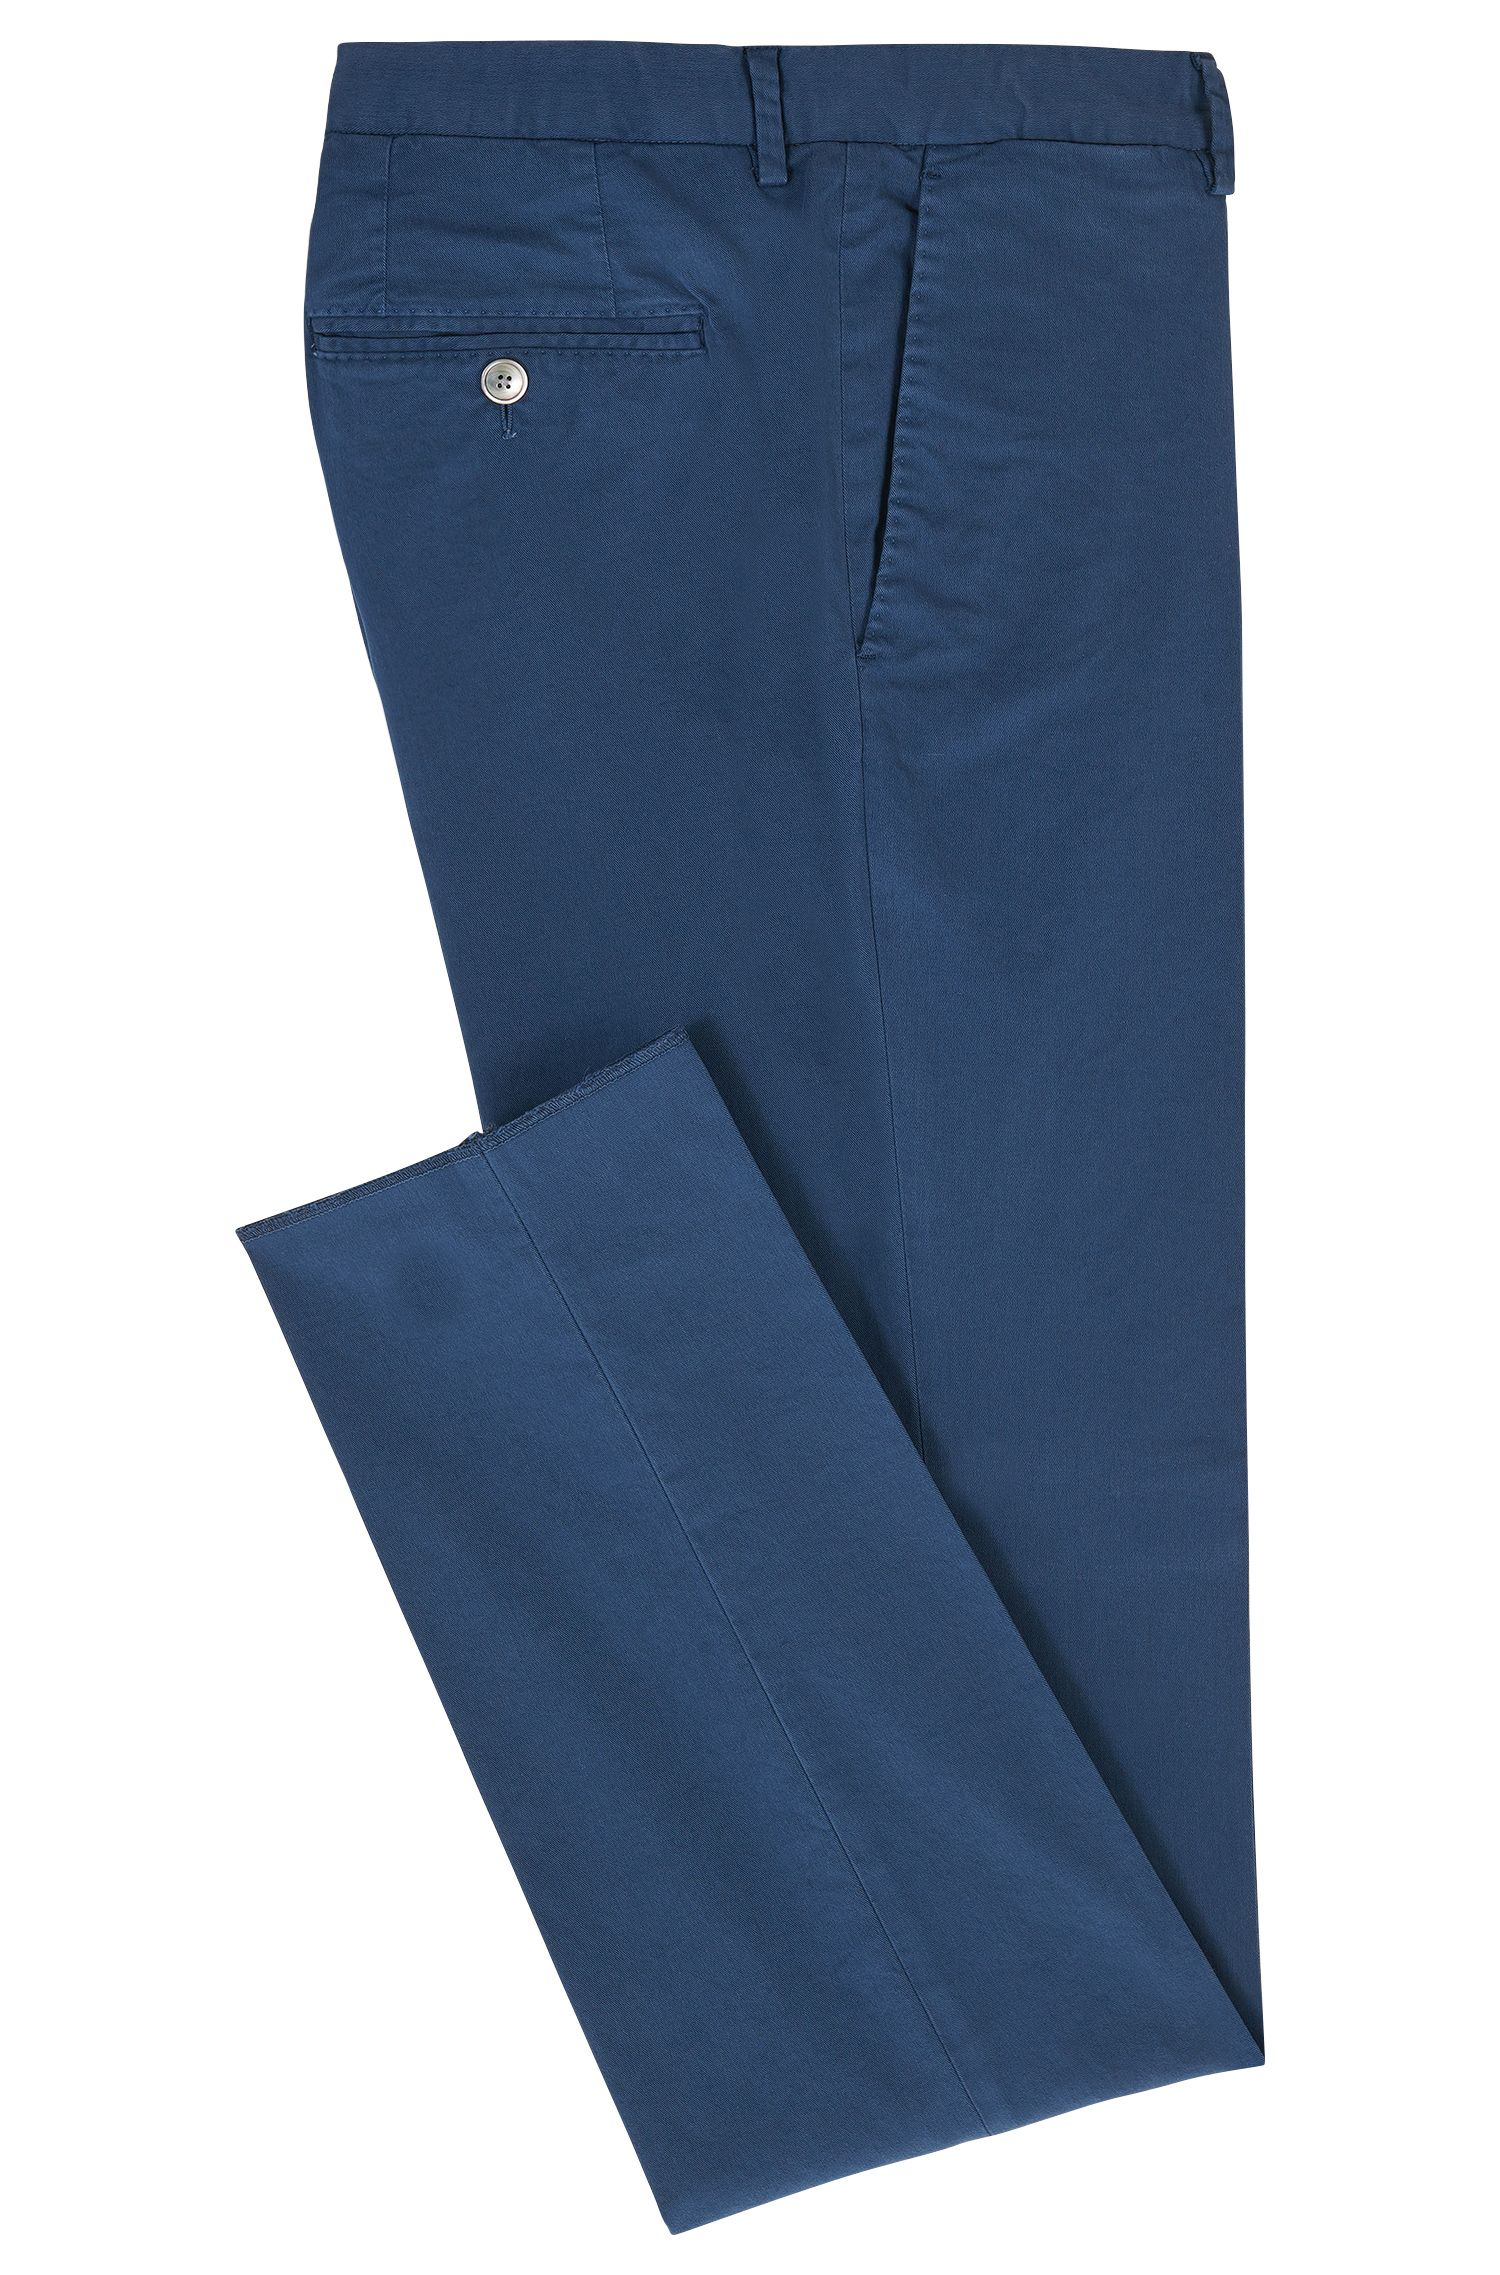 Garment-Dyed Stretch Cotton Suiting Pant, Slim Fit | Barlow D, Open Blue